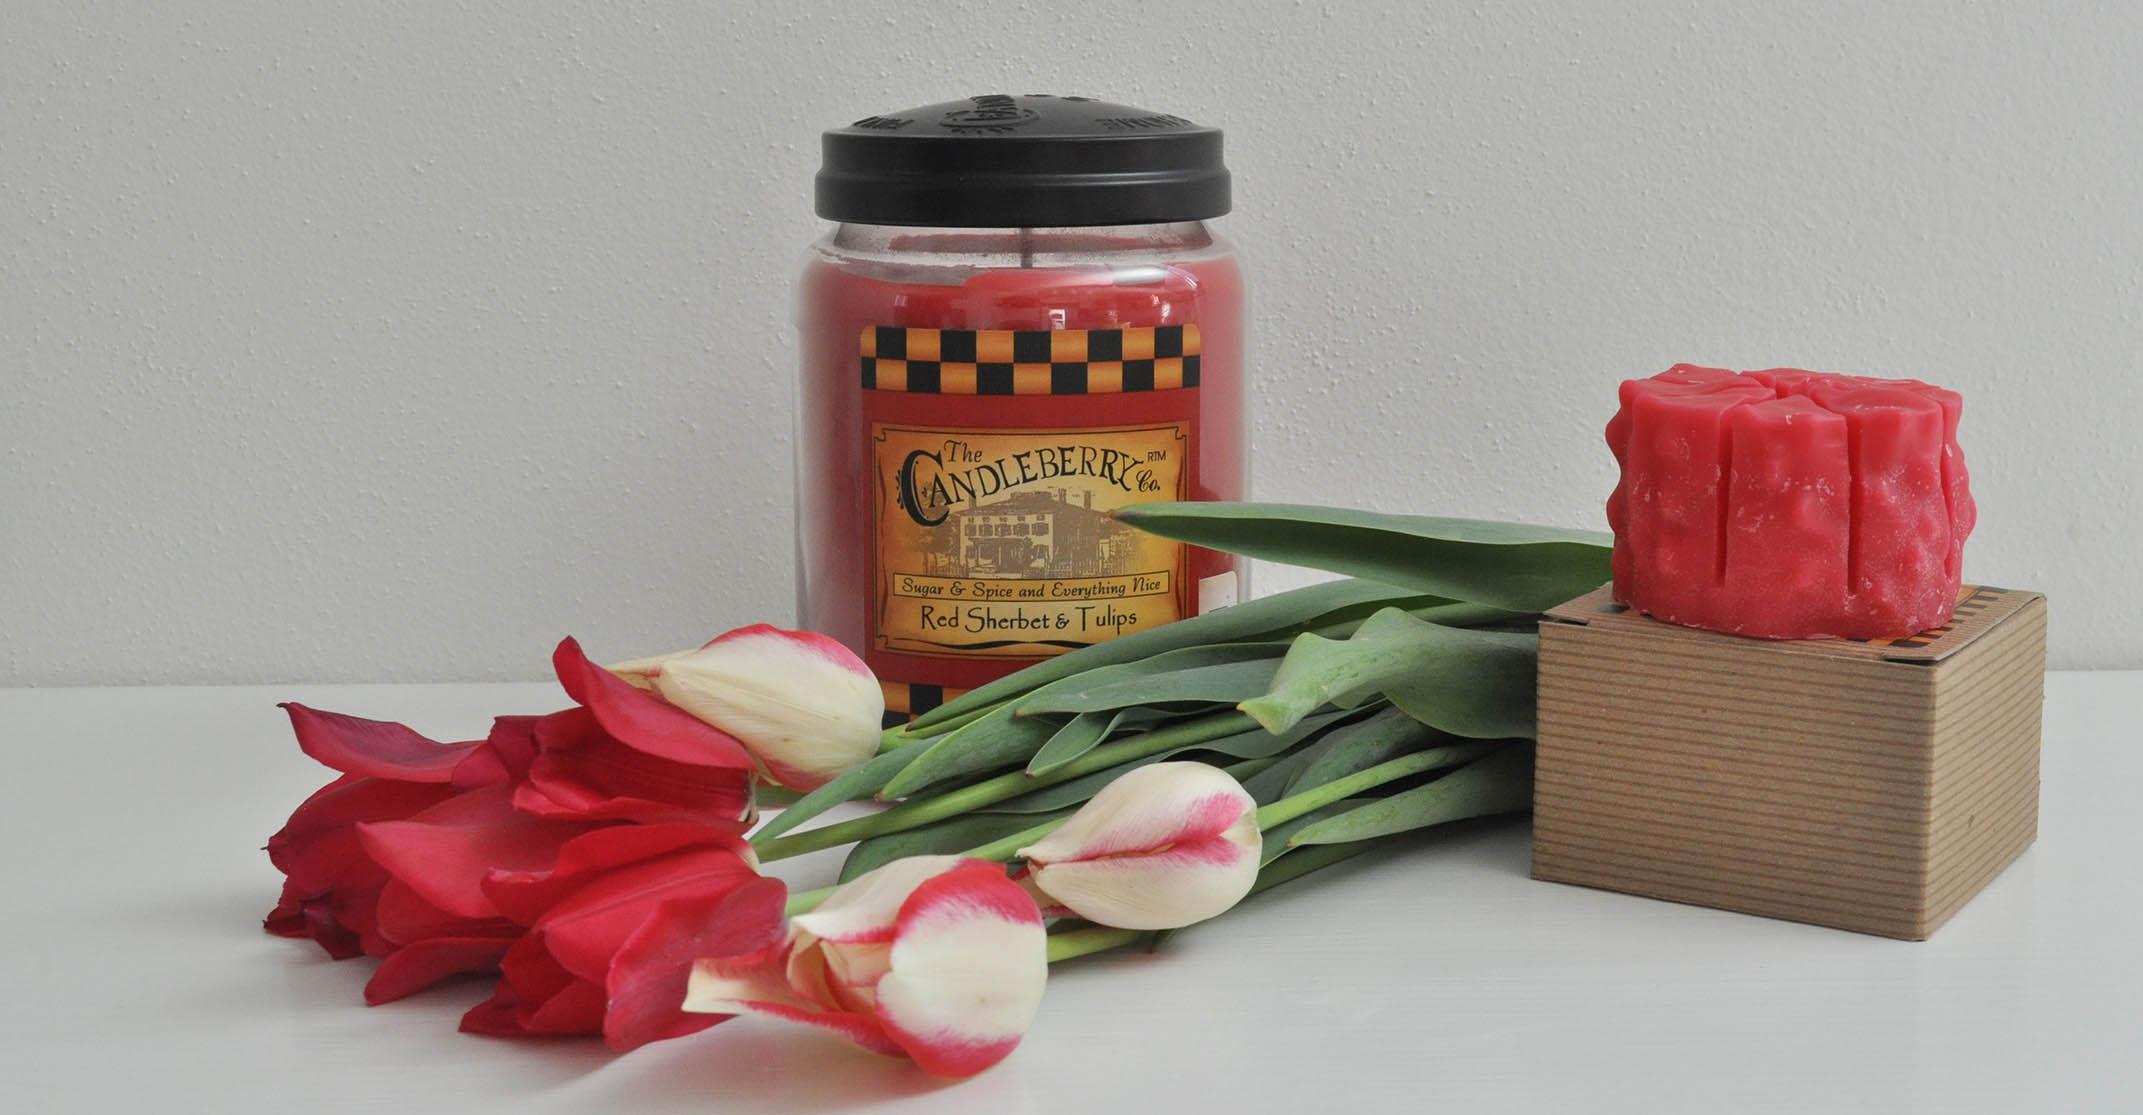 Red sherbert and Tulips